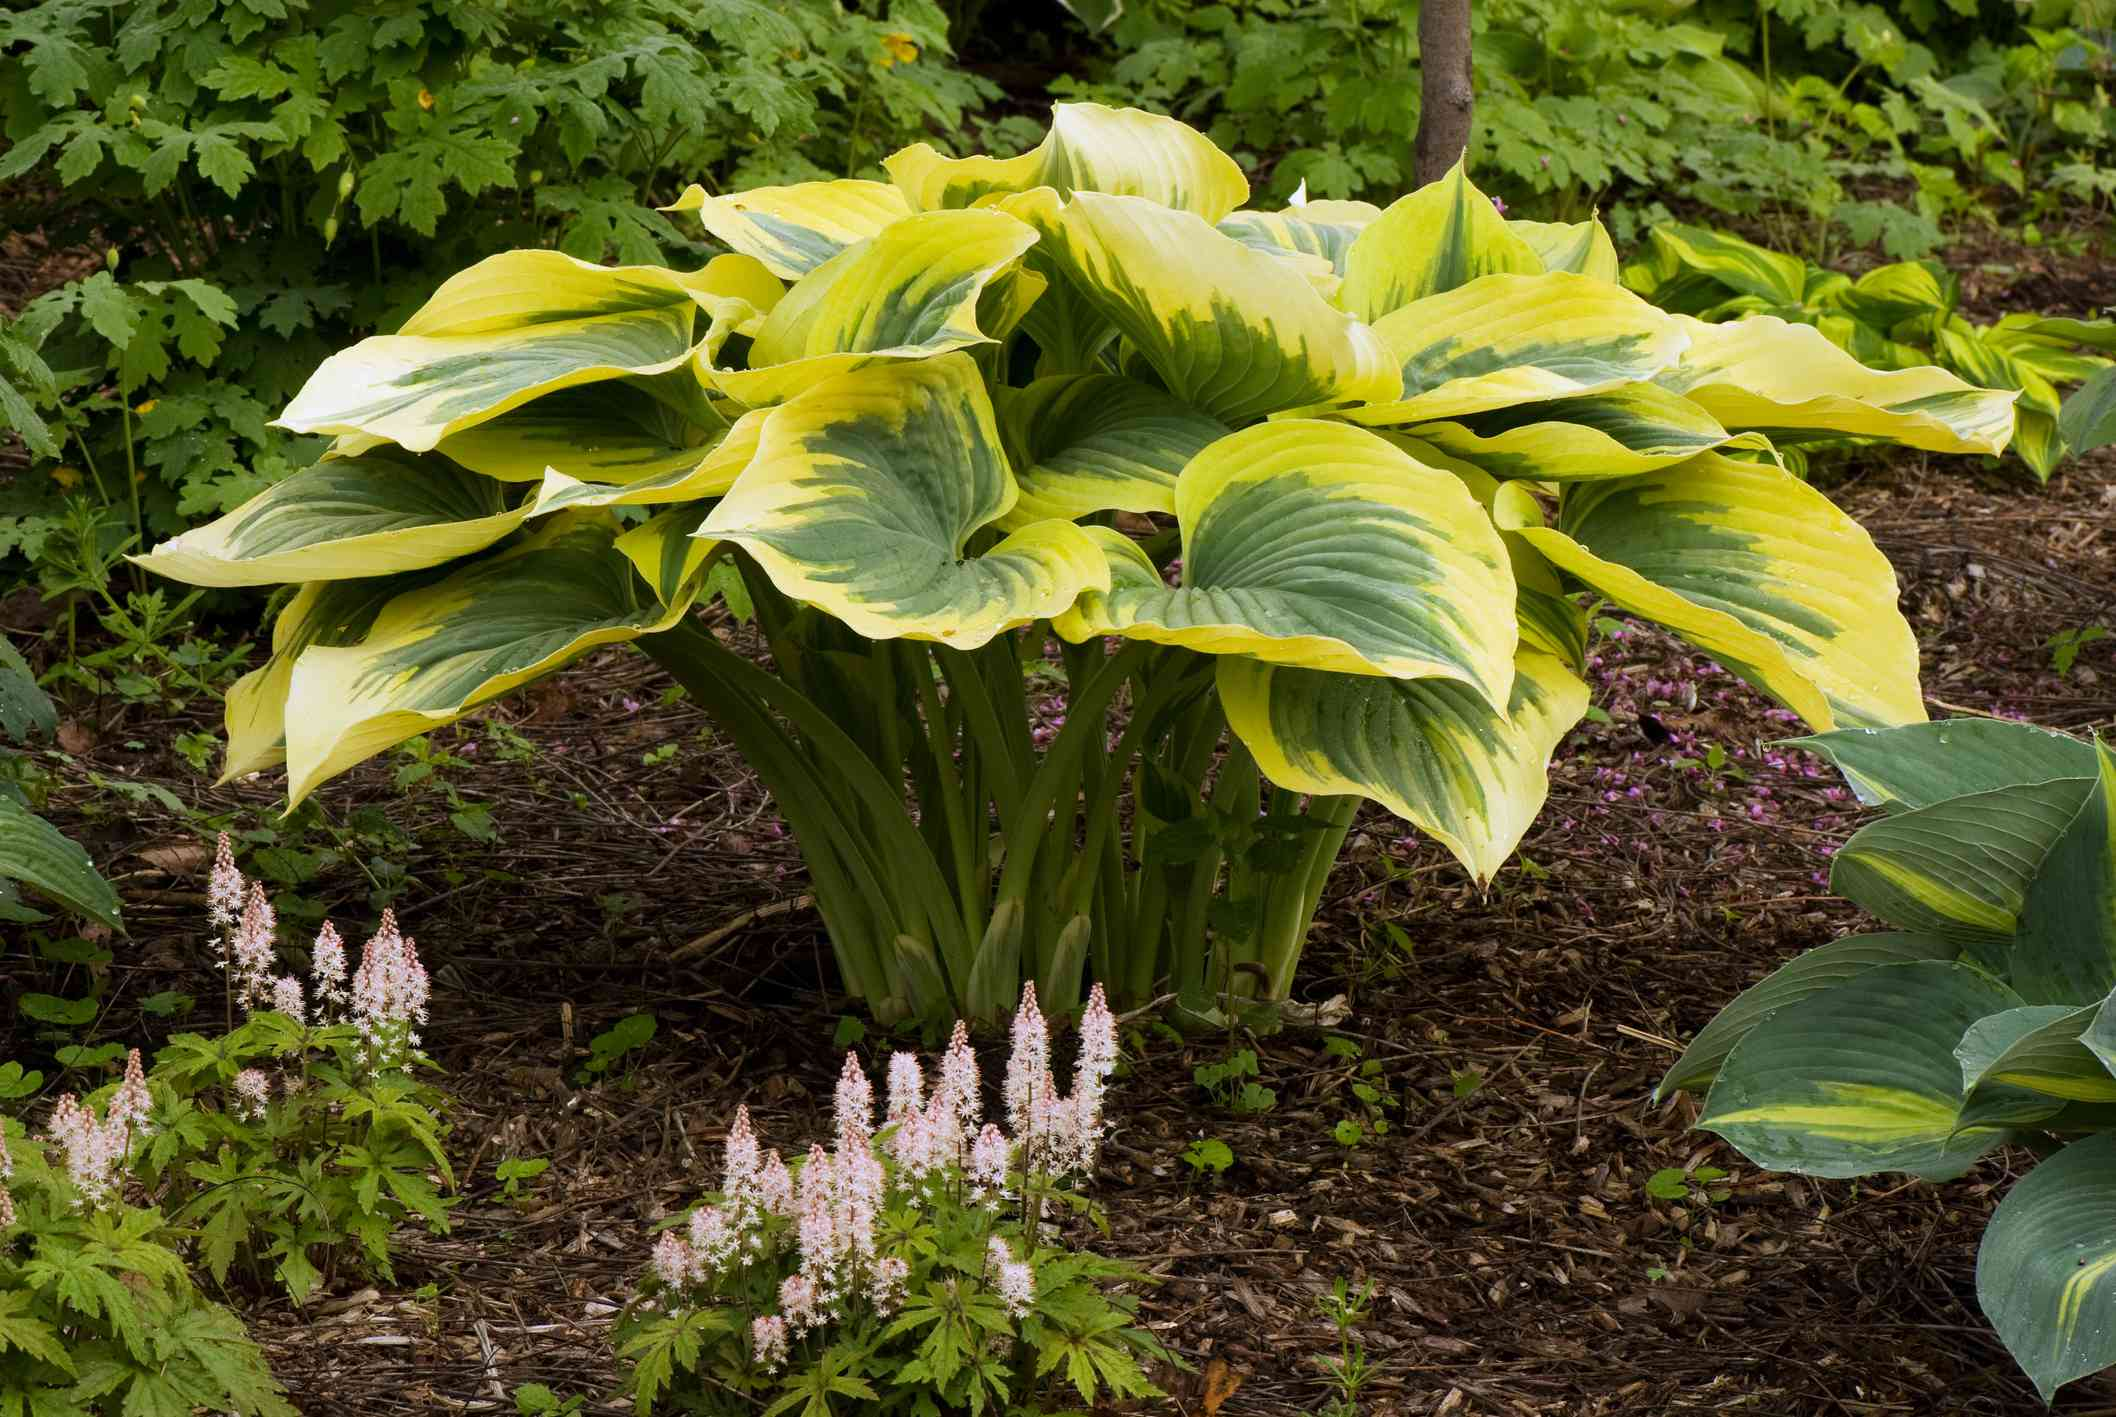 Hosta 'Liberty' planted in the ground with other flowers around it